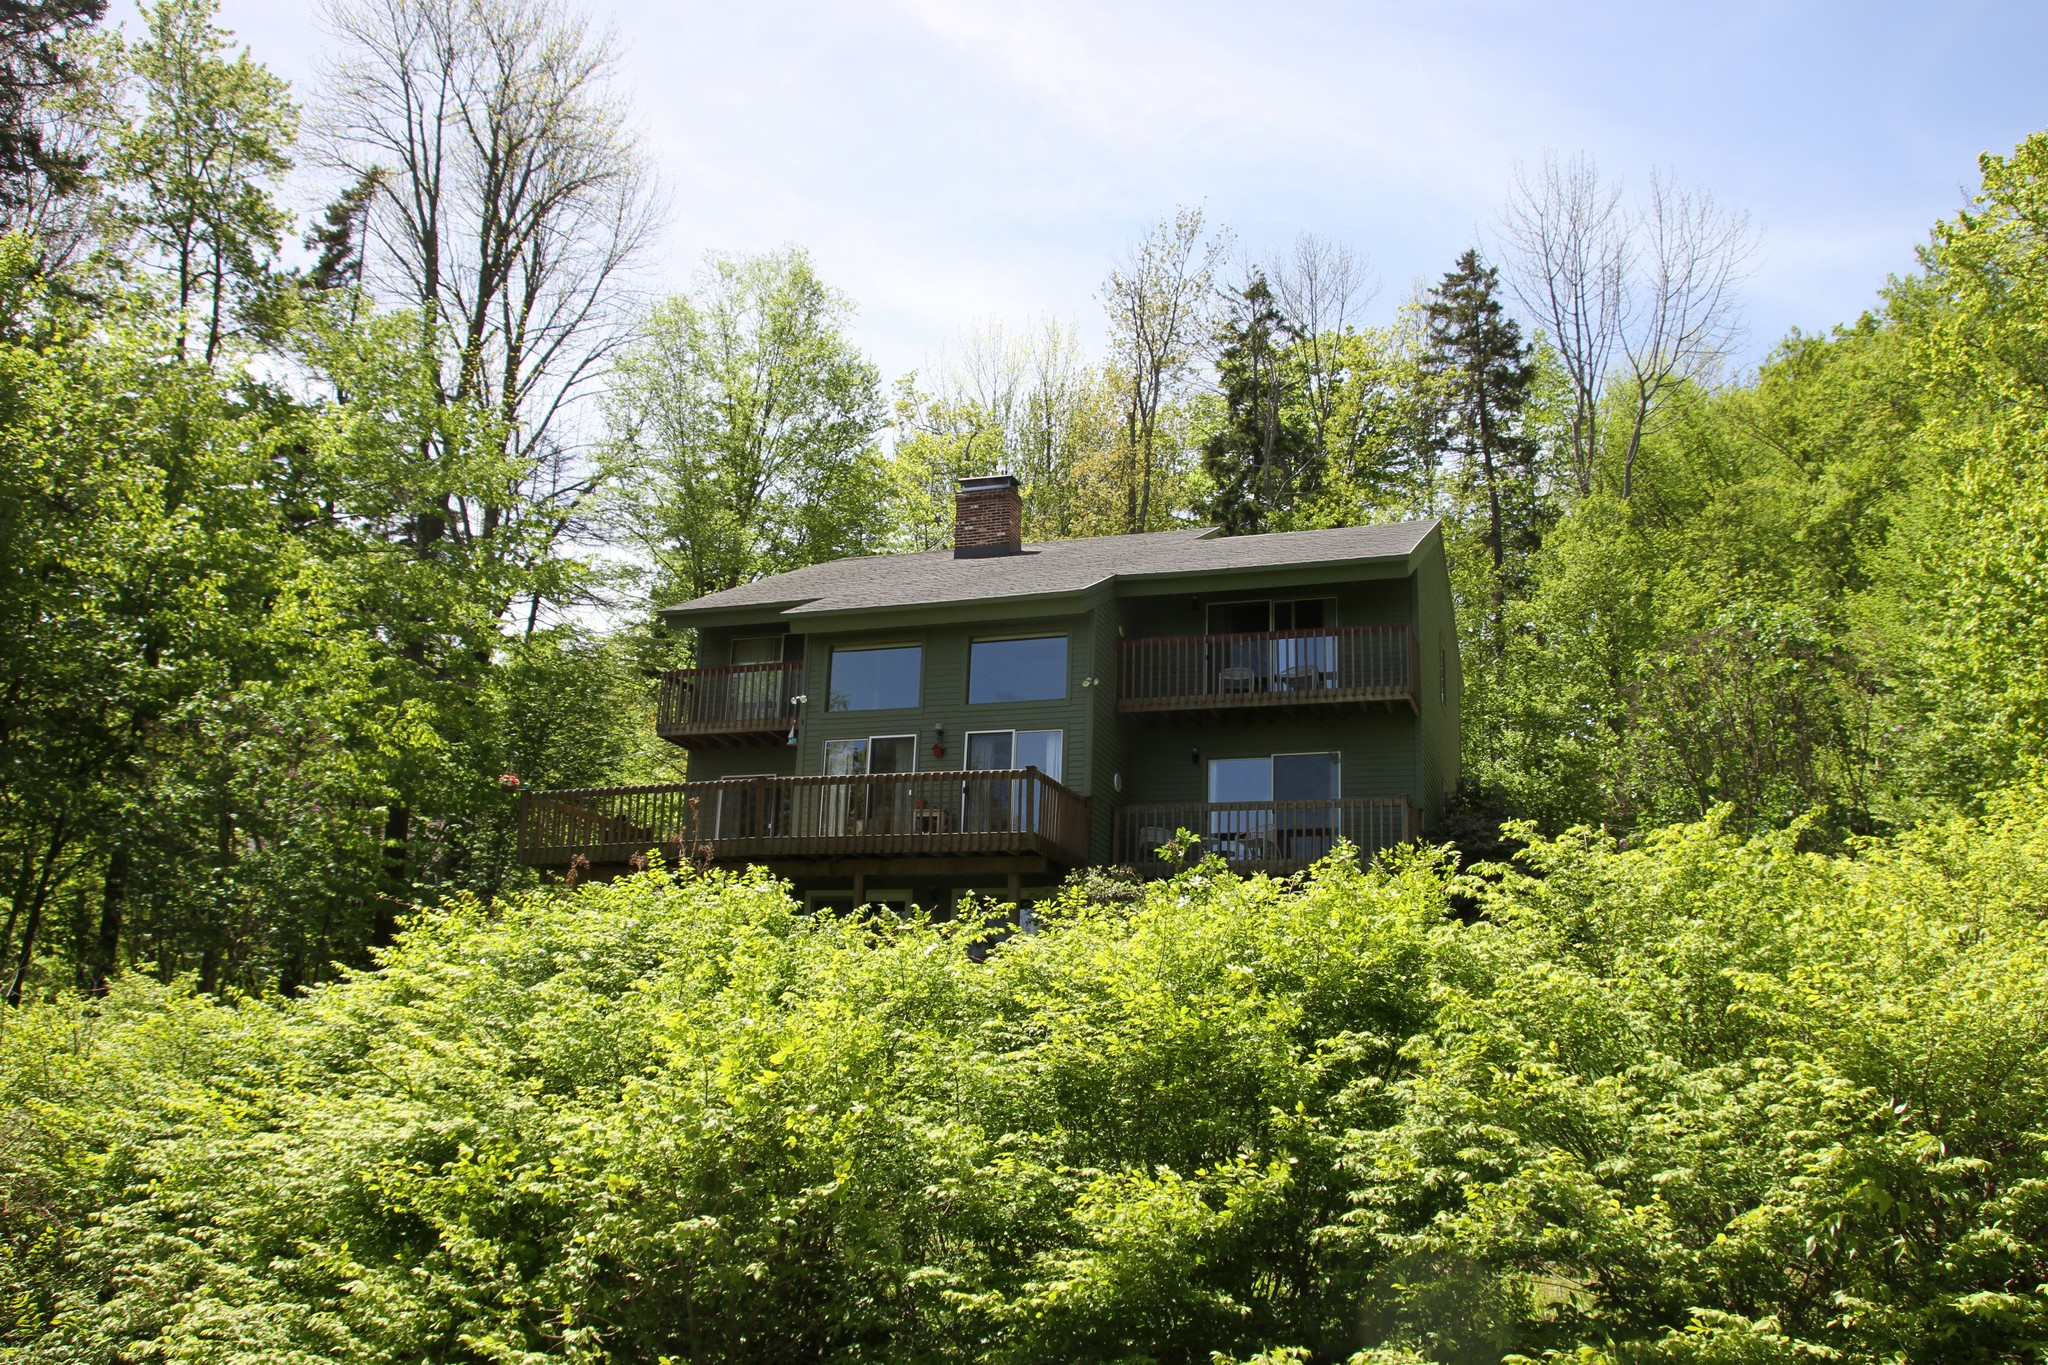 Single Family Home for Sale at 50 Benson Fuller, Winhall Winhall, Vermont, 05340 United States